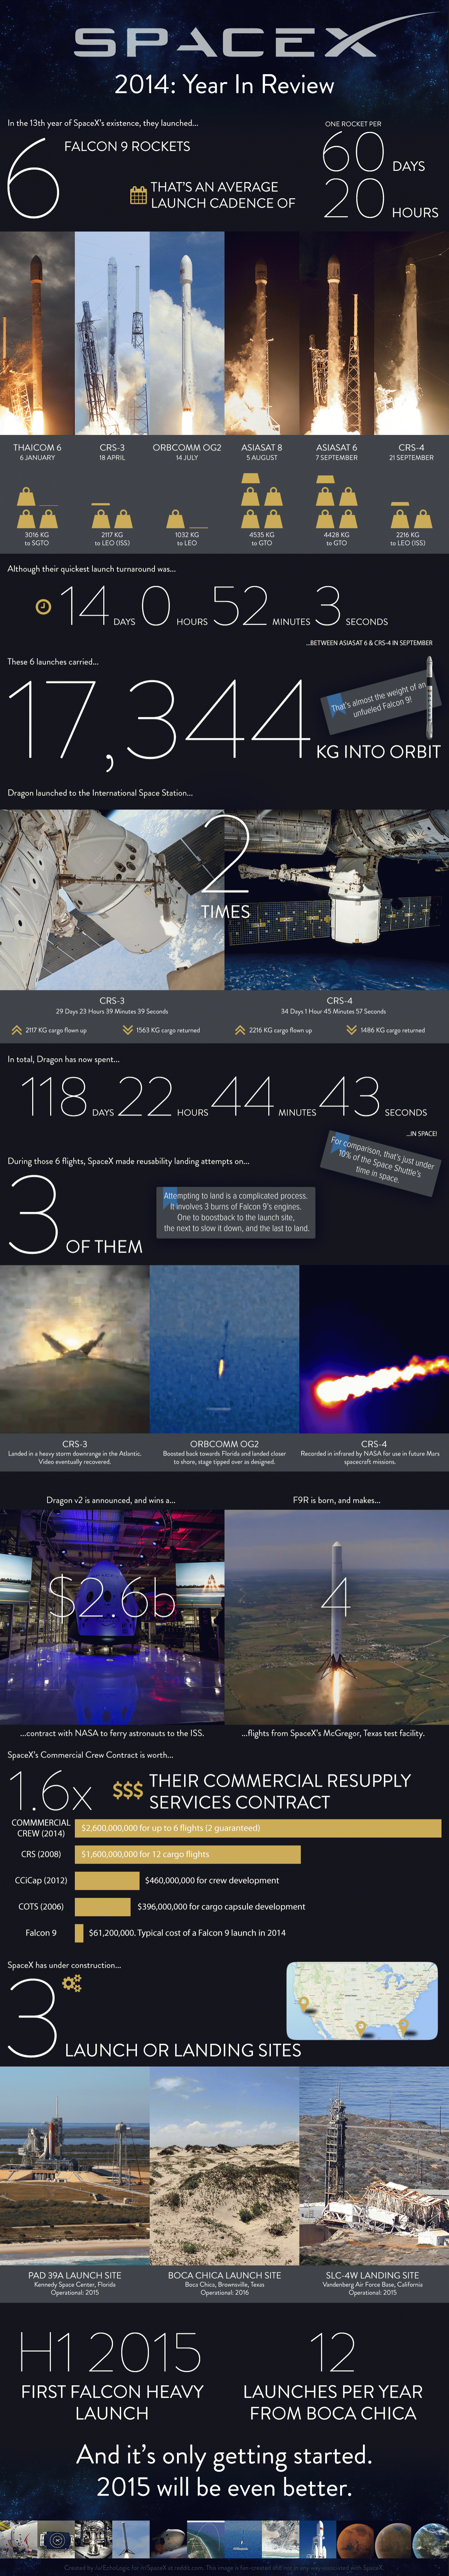 space-x-2014-infographic